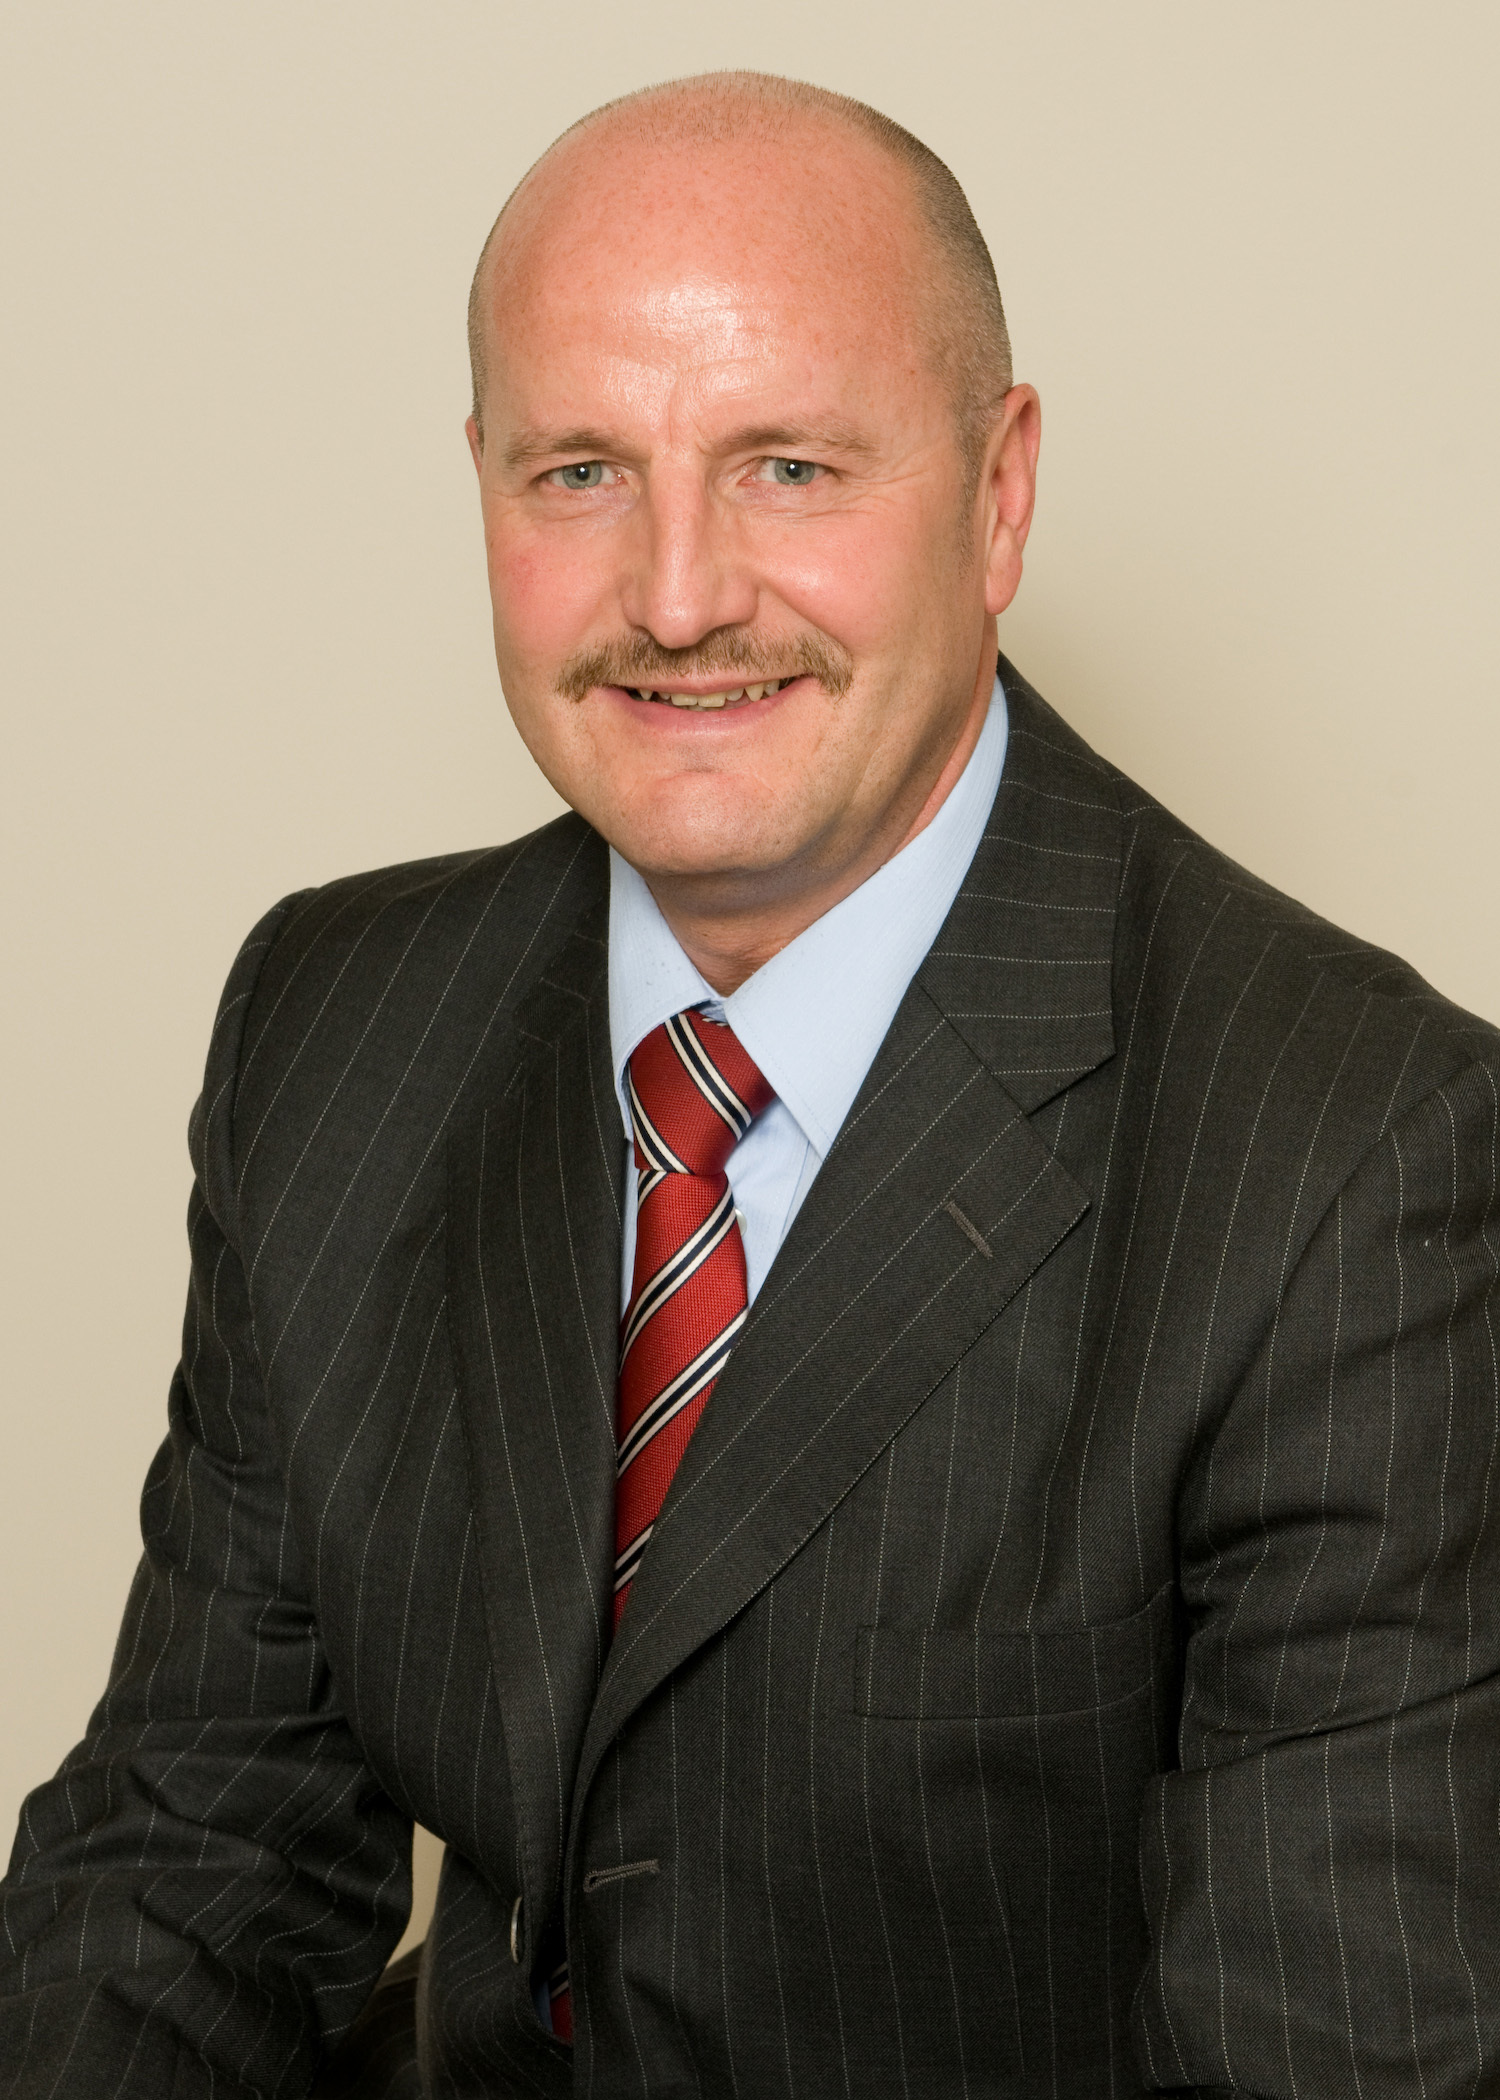 Kevin Mann, International Tax Partner at Anderson Anderson & Brown LLP, Chartered Accountants